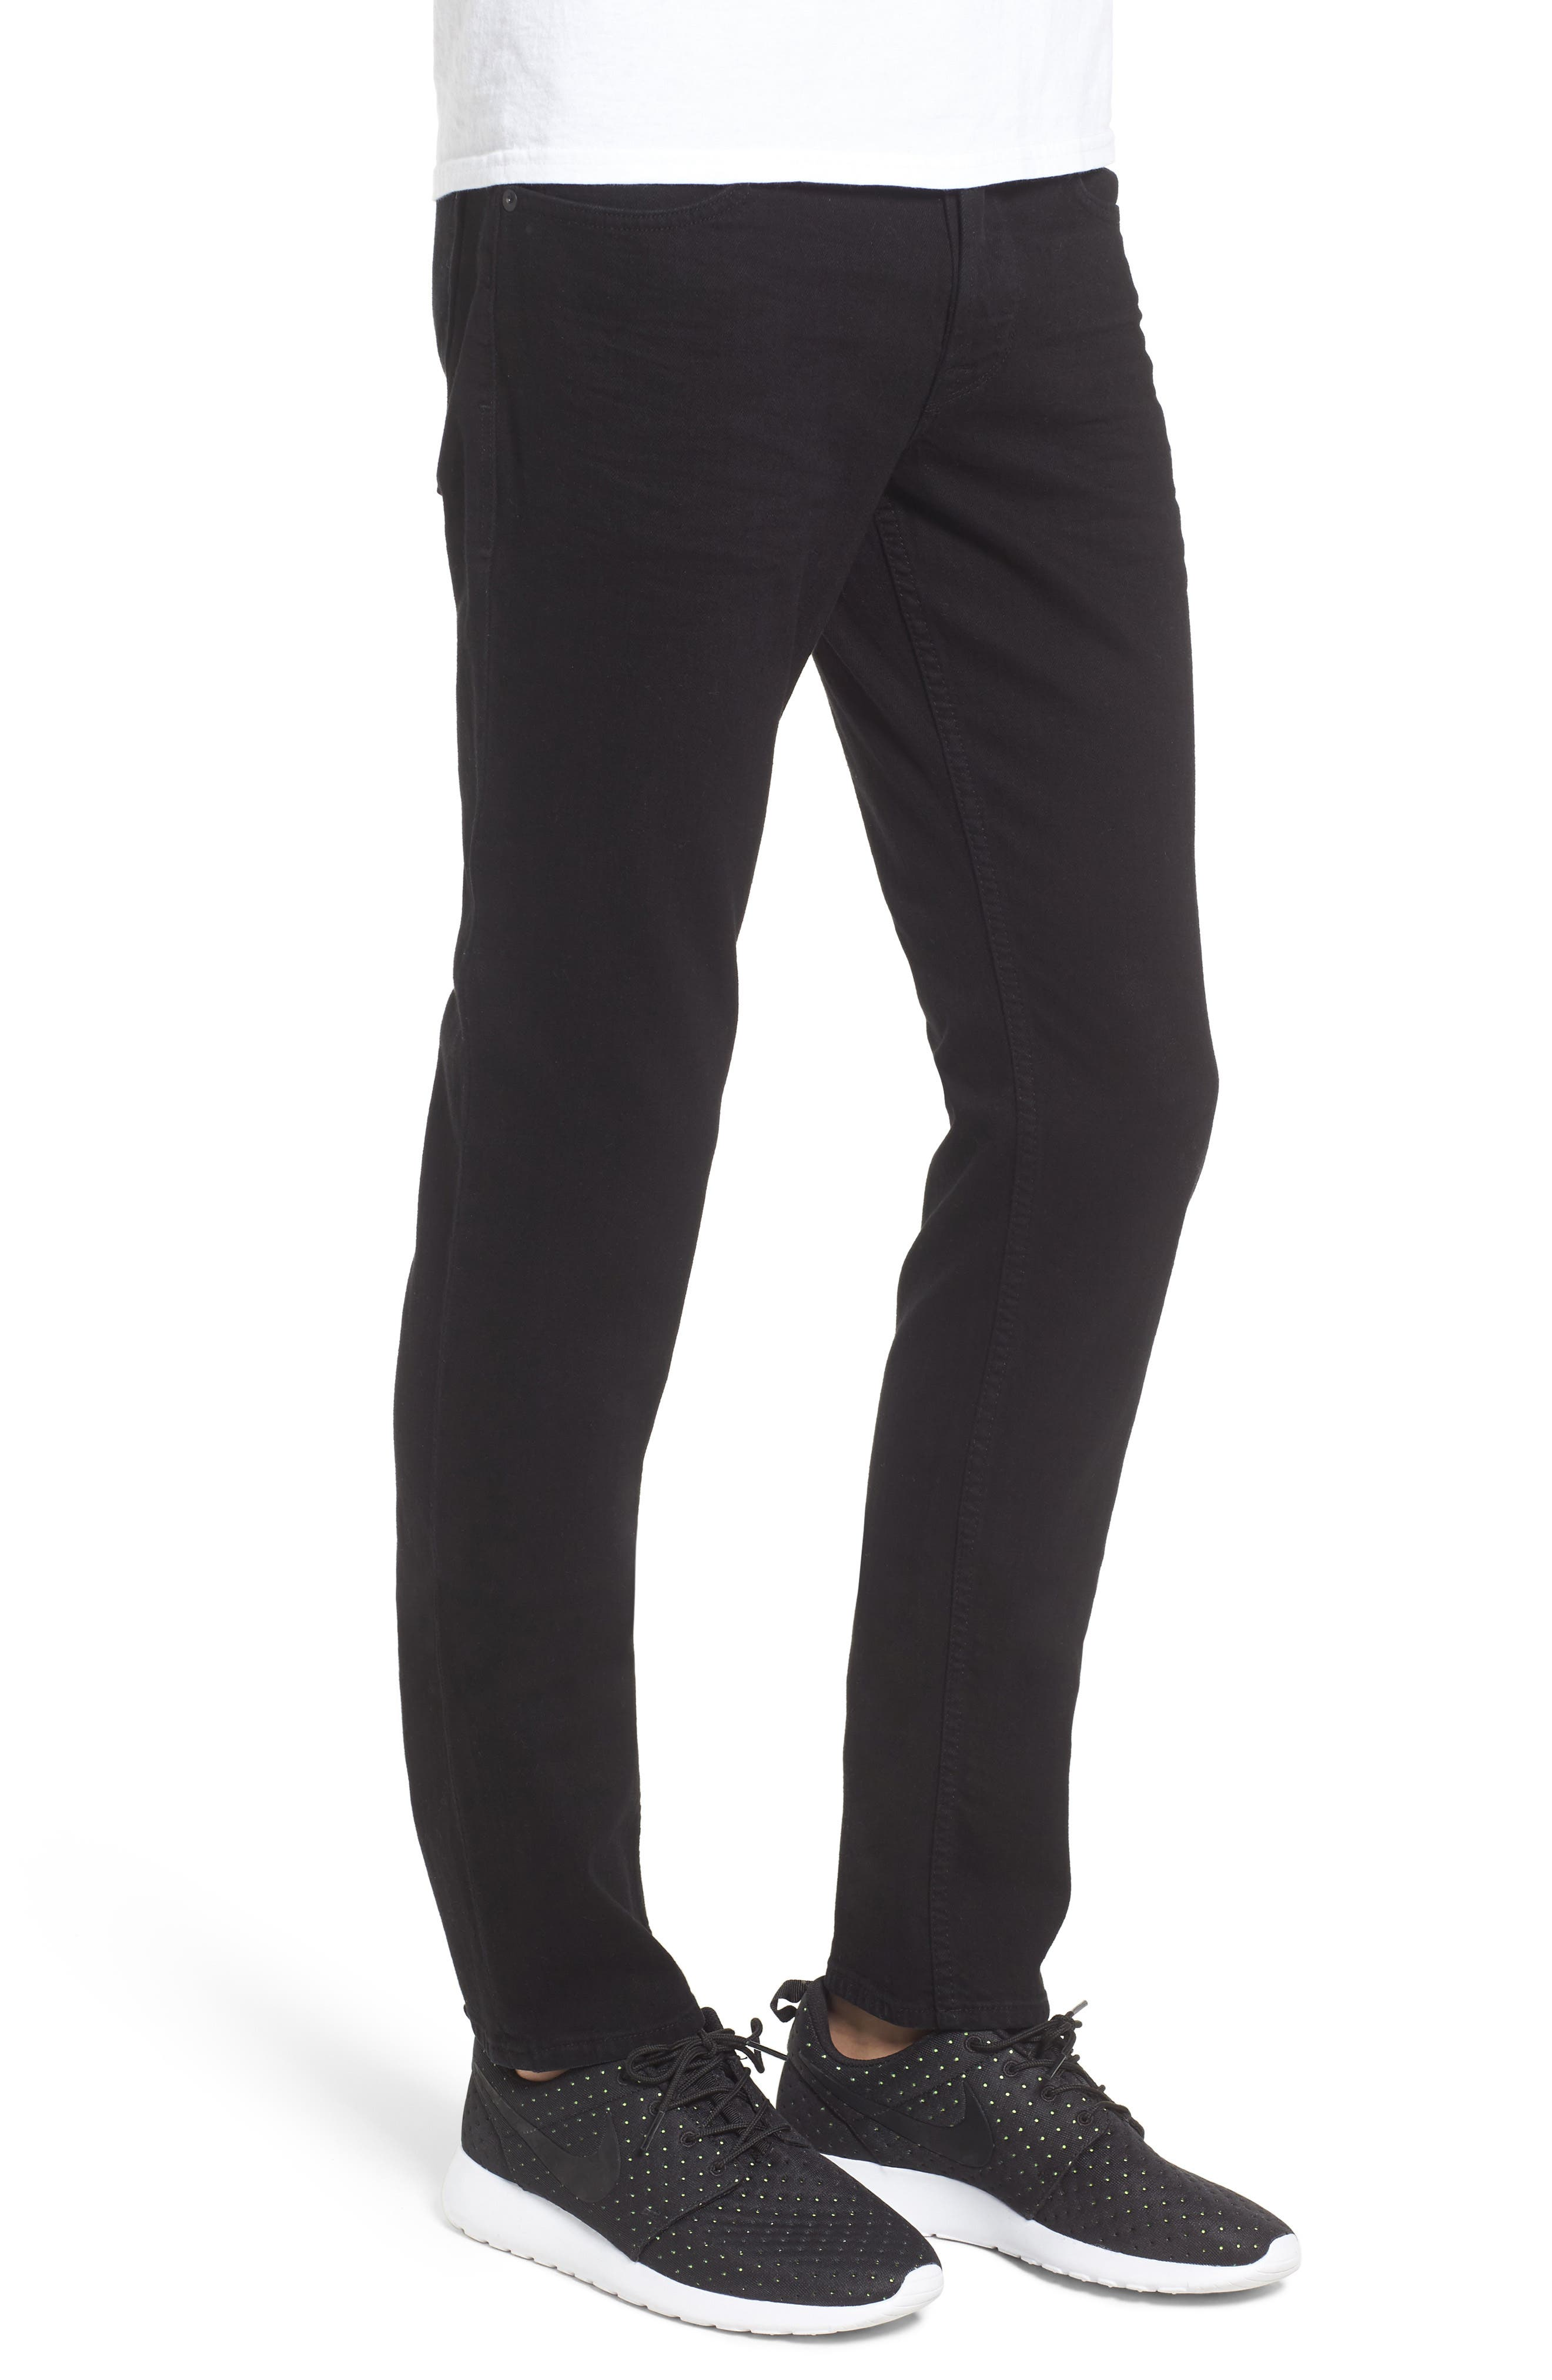 Axl Skinny Fit Jeans,                             Alternate thumbnail 3, color,                             002